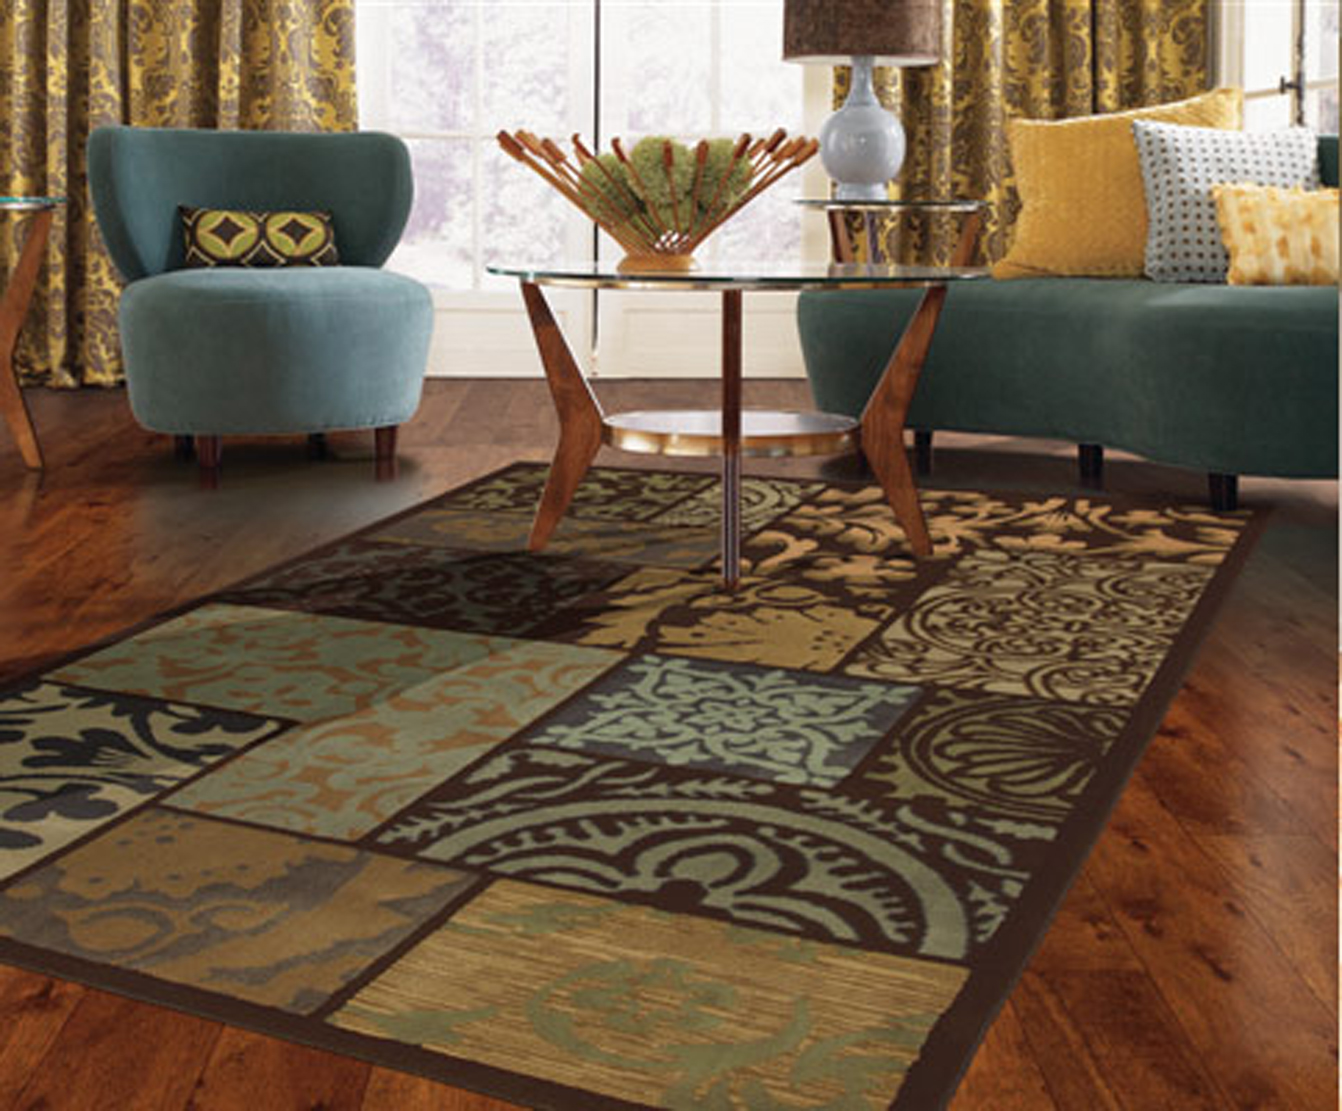 Large Area Rugs - Add Style And Personality